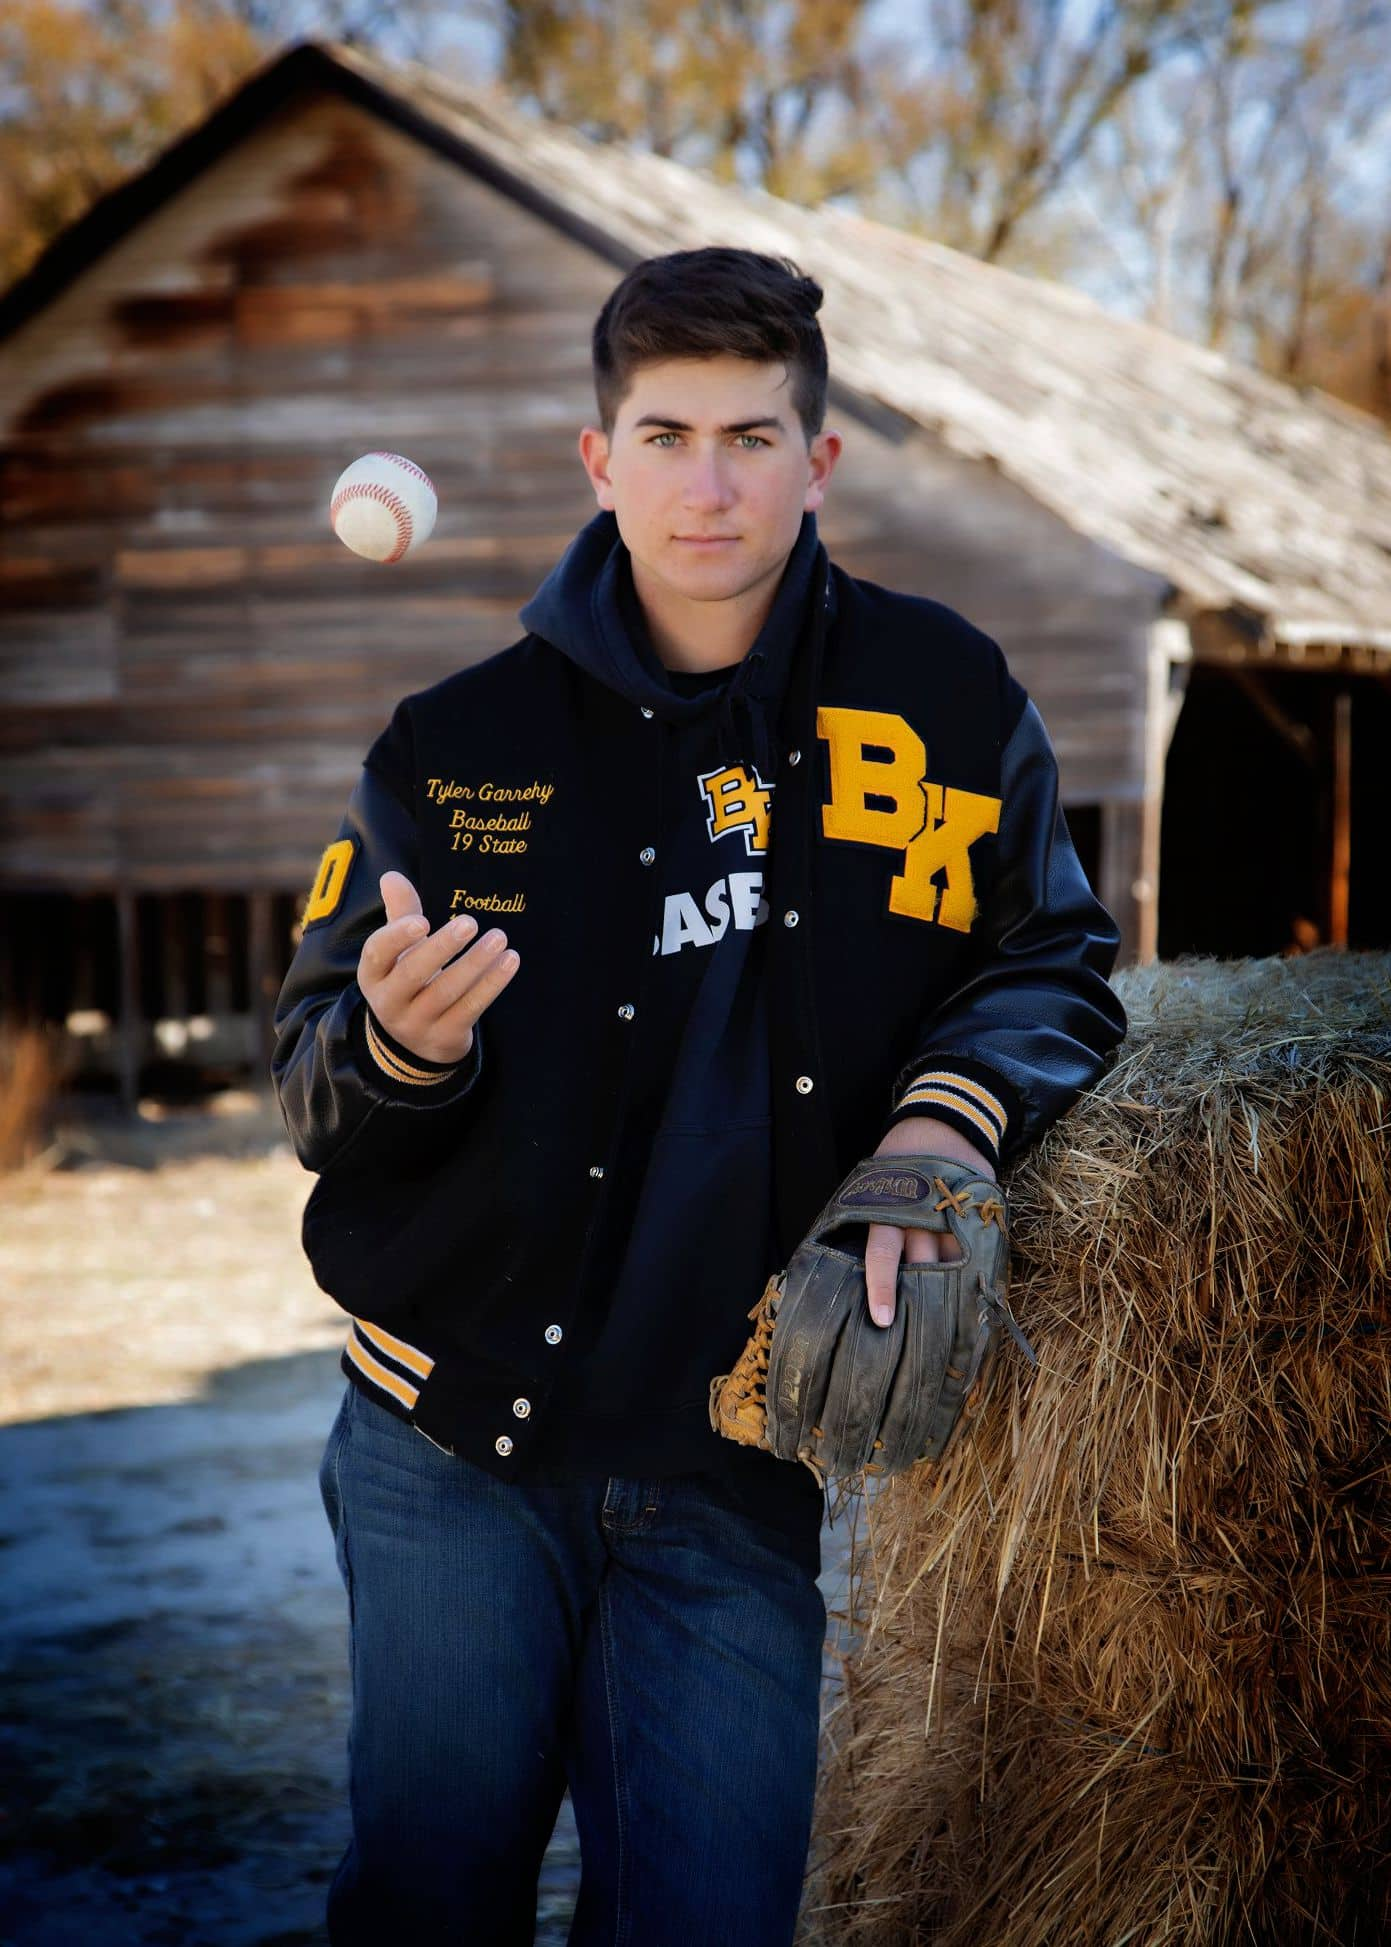 Man leaning against hay holding a baseball glove and ball.